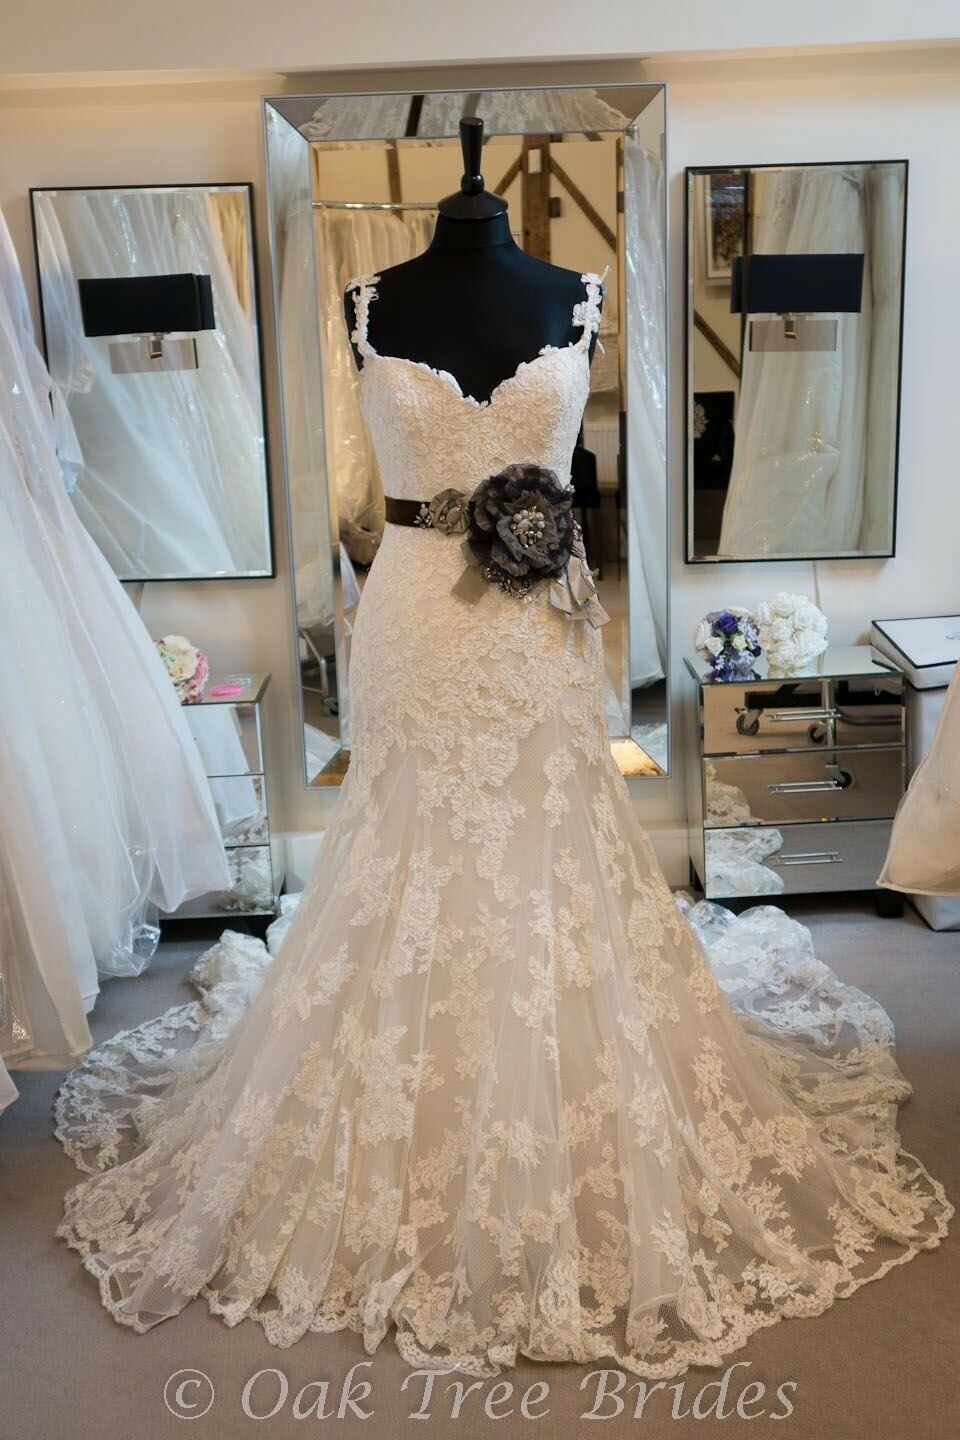 Enzoani Diana Bridal Gown - image 1